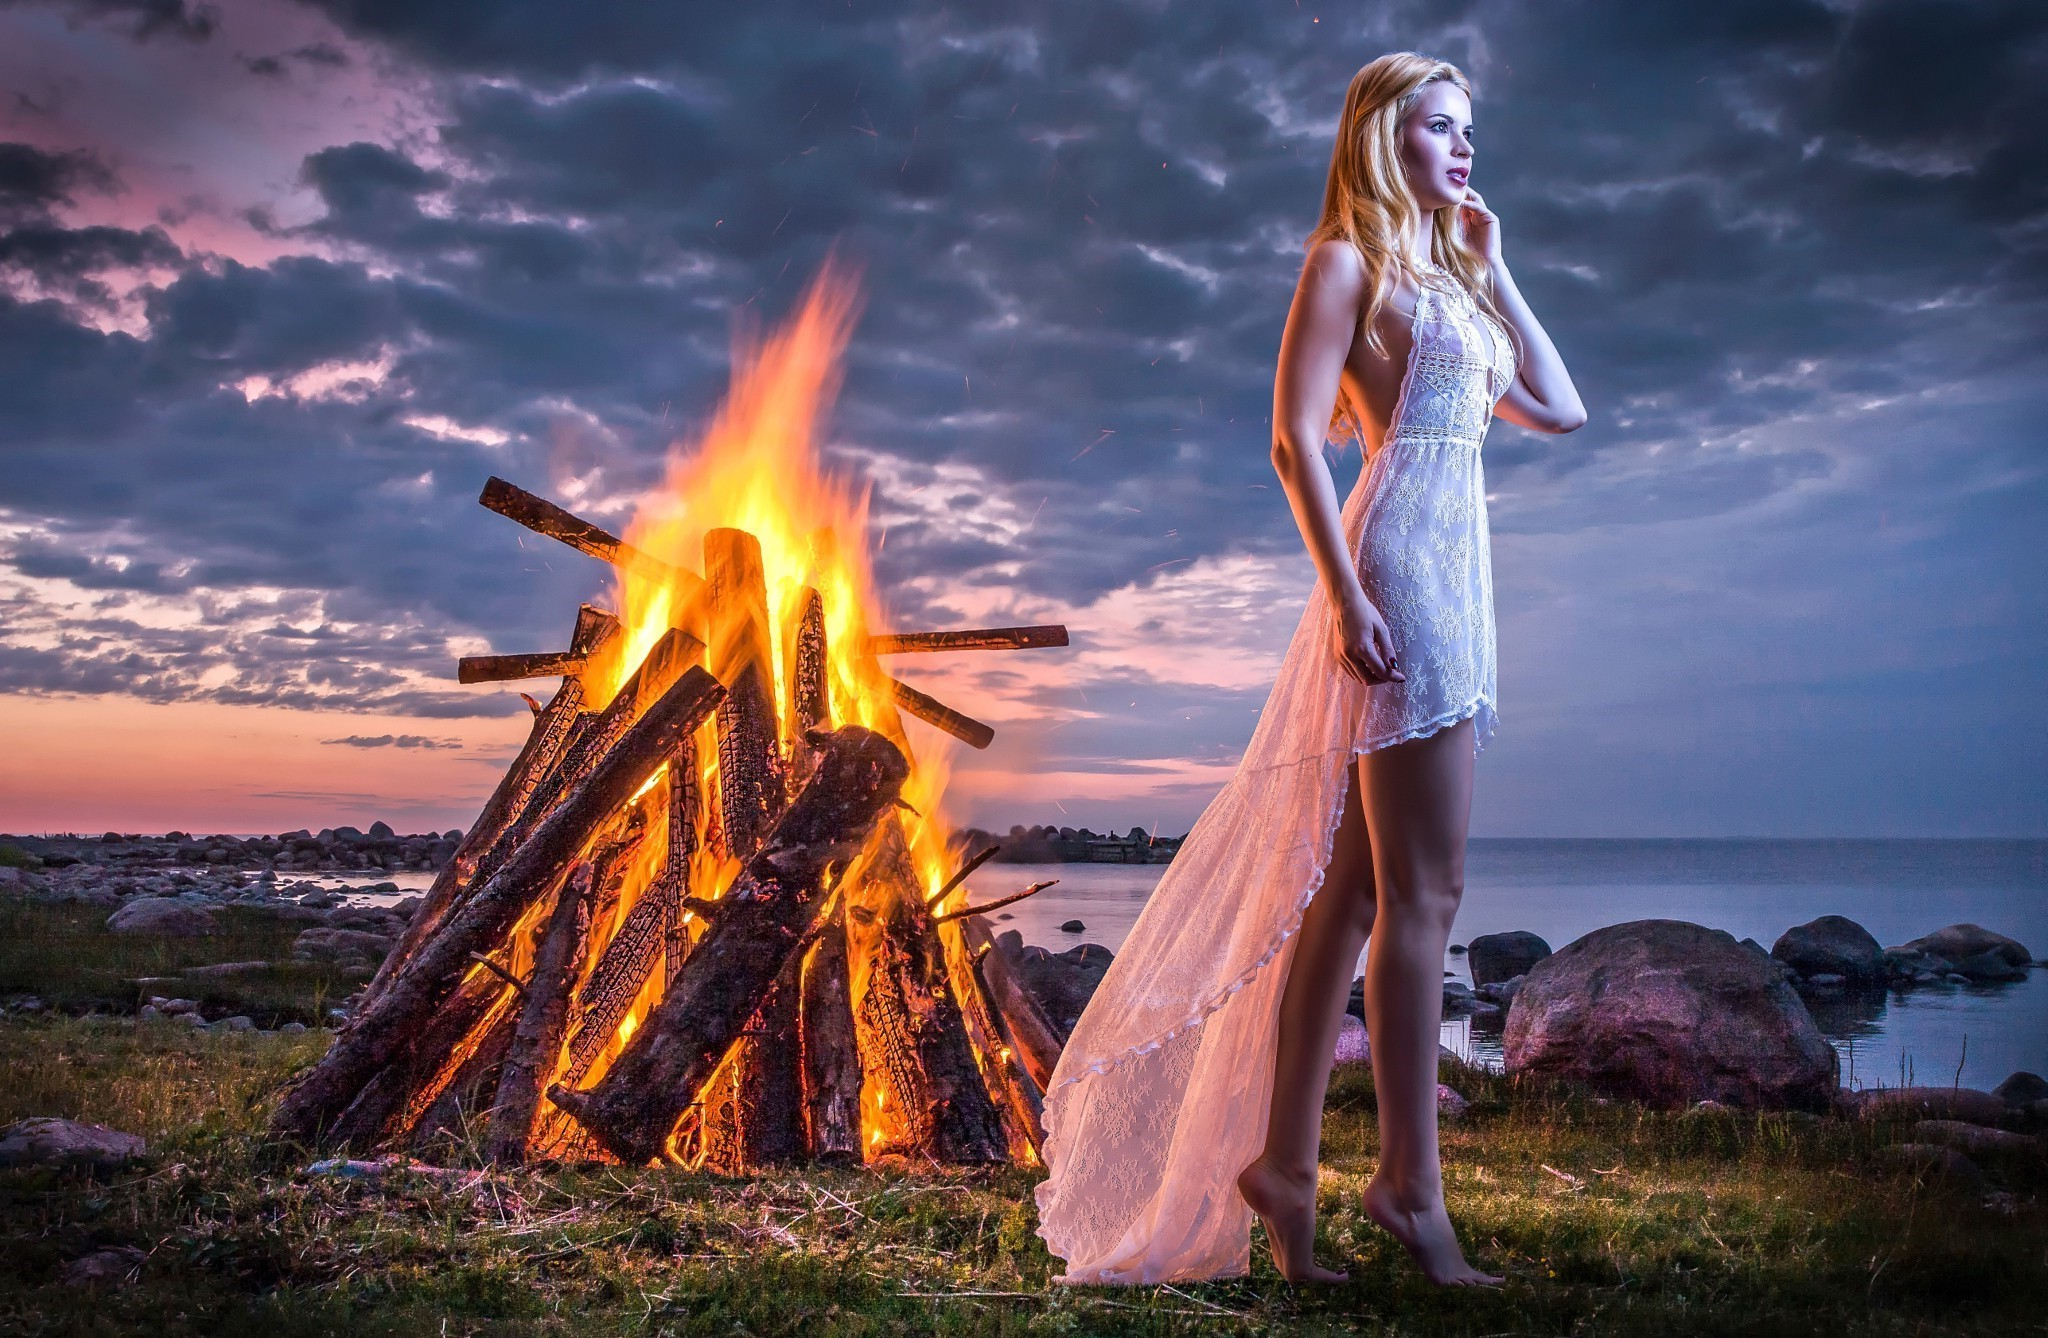 2048x1152 Alone Girl Standing Near Fire 2048x1152 Resolution Hd 4k